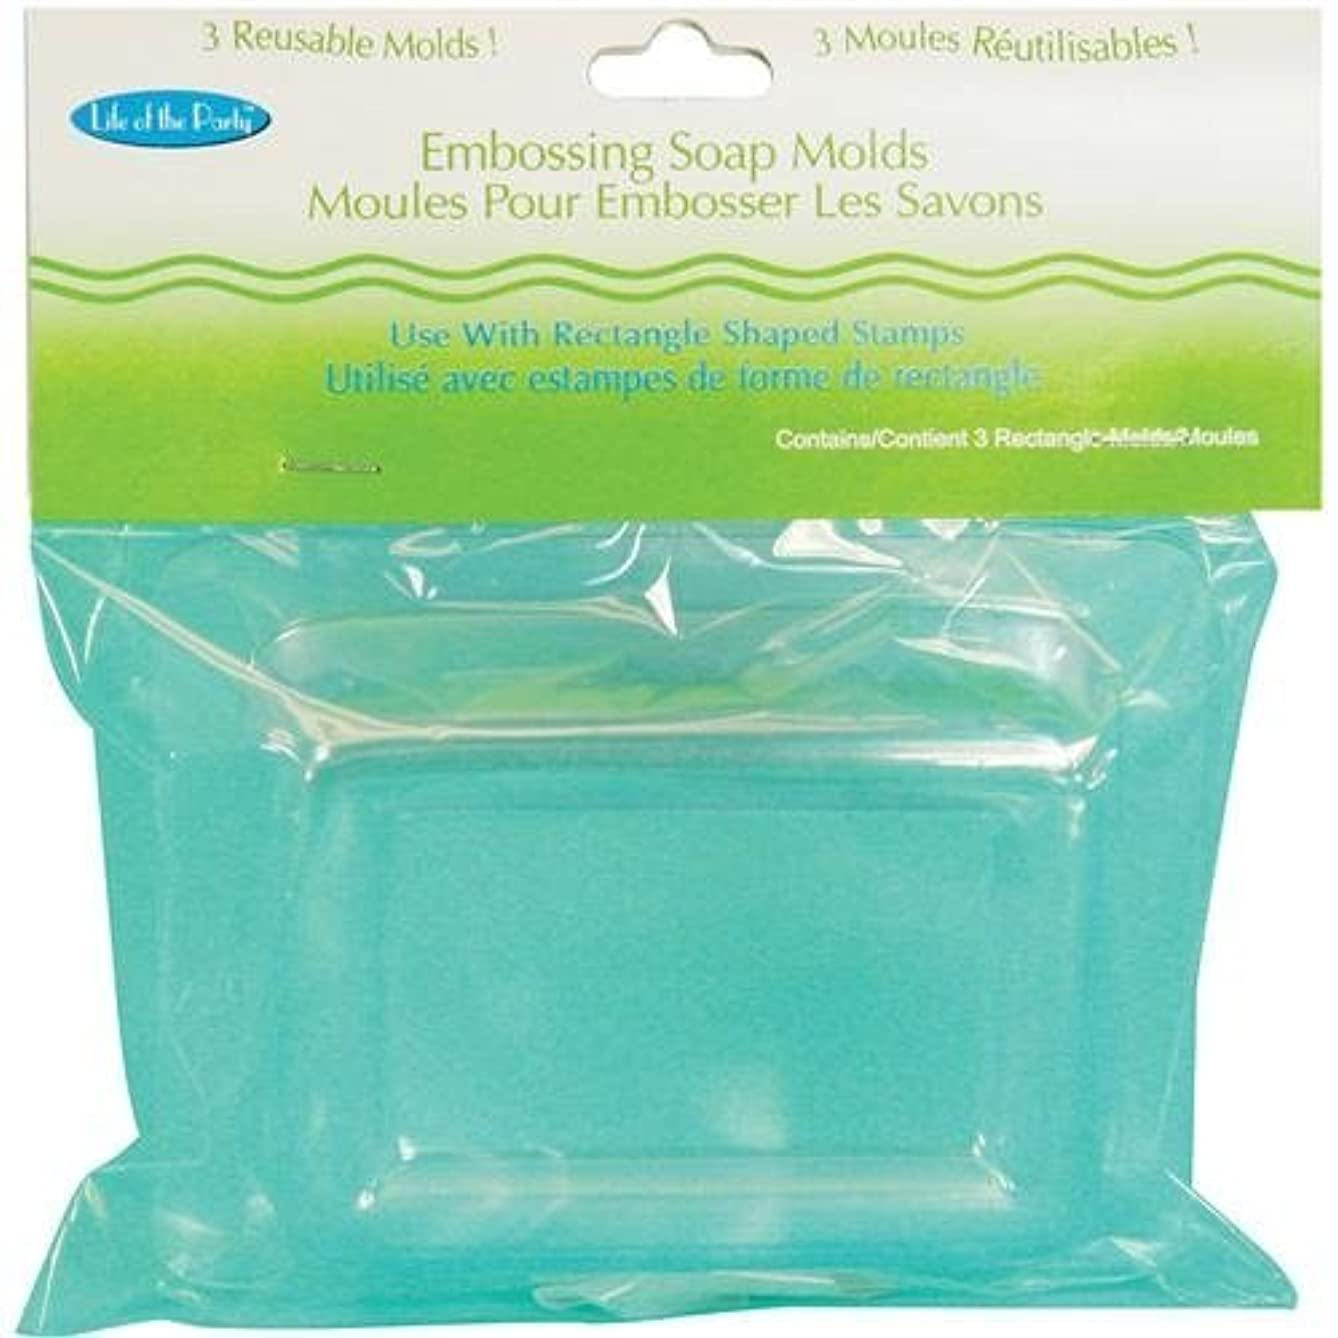 Life of the Party Embossing Soap Molds, Rectangle, 3-Pack